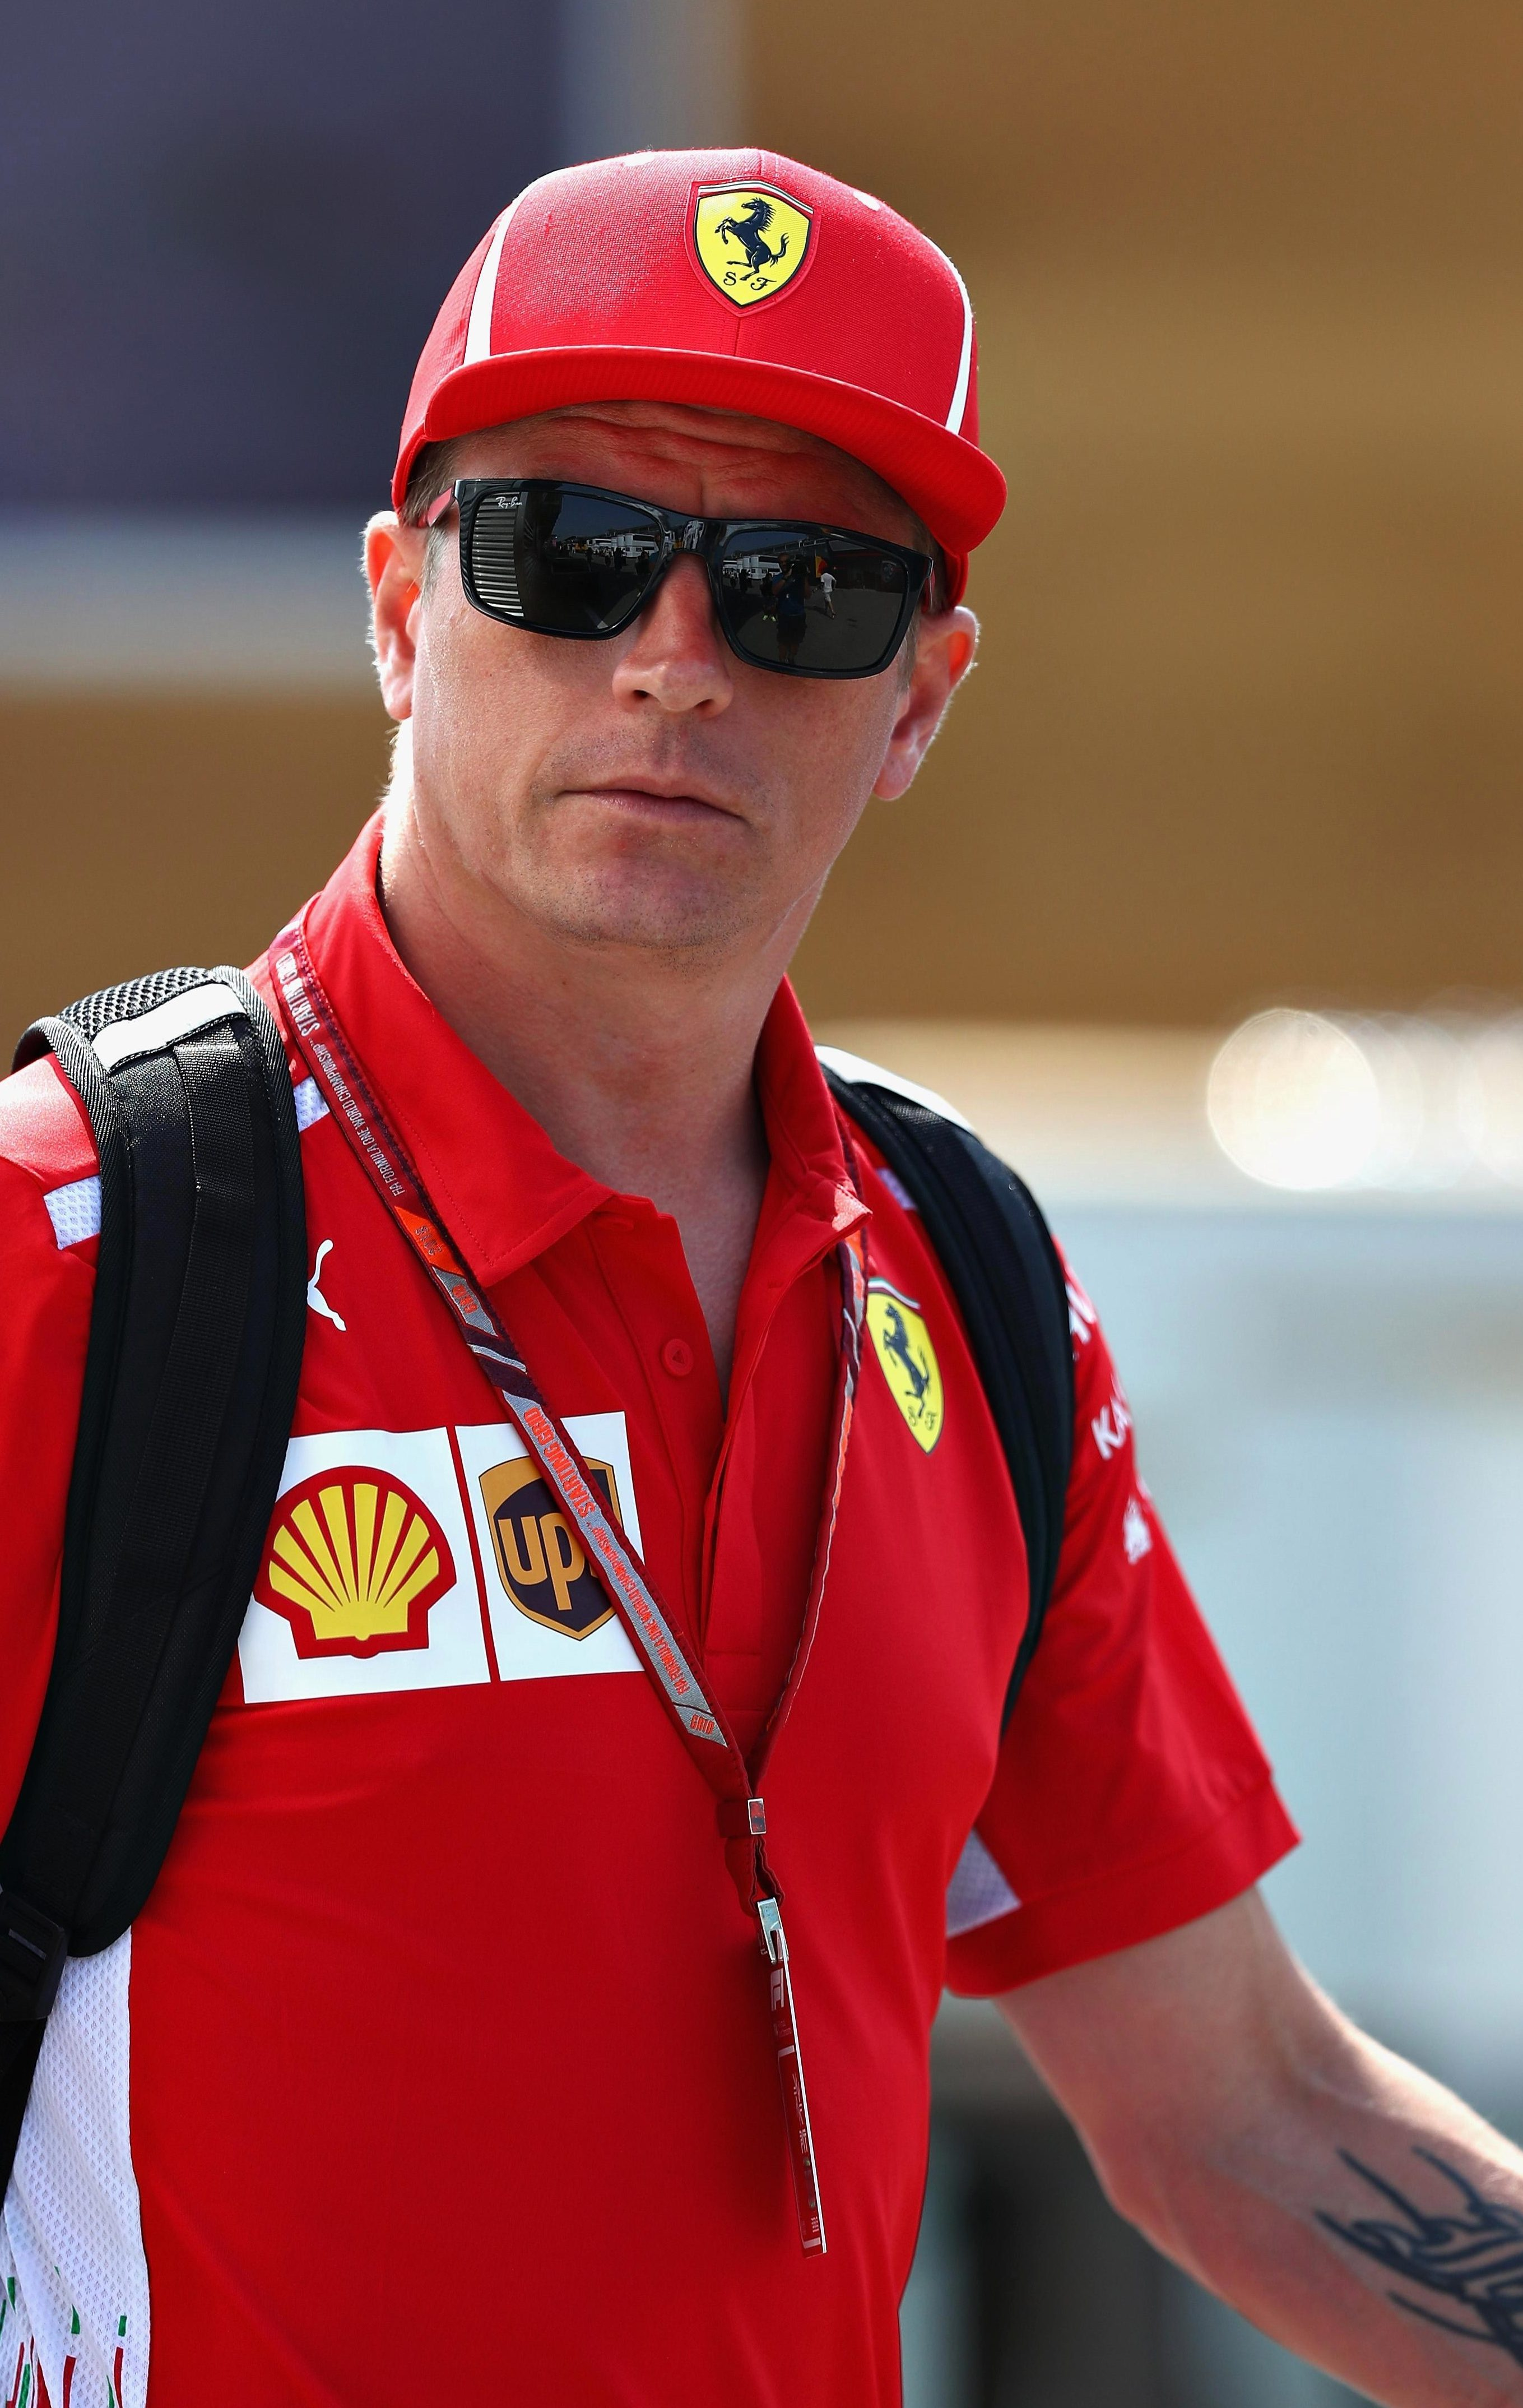 Raikkonen will be 41-years-old when his new deal with Sauber expires